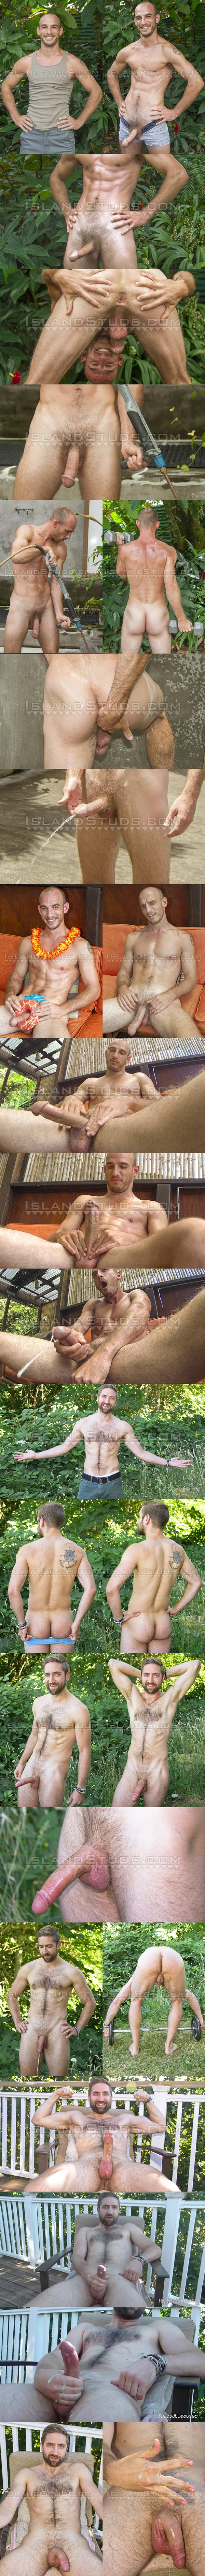 Islandstuds - big-cocked macho straight guardsman Eli and sexy fuzzy graduate student Mark strip down, open virgin manholes, work out, piss and jerk off 02